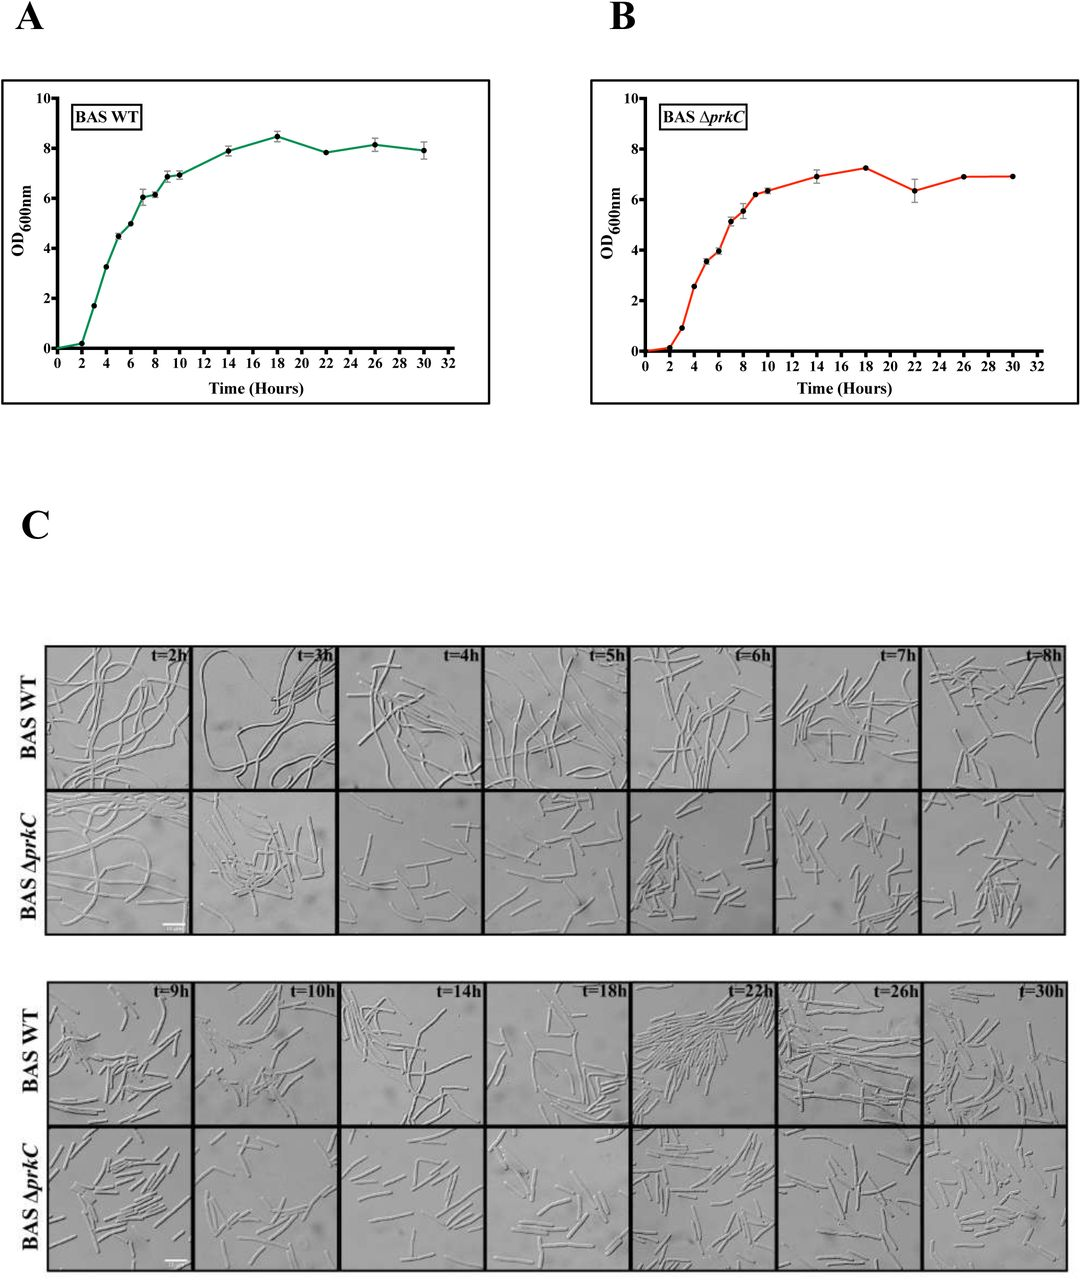 Effect of prkC disruption on chaining morphotype during different phases of bacterial growth. (A) Growth kinetics of BAS WT. BAS WT strain was grown in LB broth at 37°C. Absorbance [OD ( A600 nm )] was recorded at the indicated time points. Error bars denote standard deviation, n = 3. (B) Growth kinetics of BAS Δ prkC . BAS Δ prkC strain was grown in LB broth at 37°C. Absorbance [OD ( A600 nm )] was recorded at the indicated time points. Error bars denote standard deviation, n = 3. (C) Phase contrast images of BAS WT and BAS Δ prkC strains at different phases of bacterial growth cycle. Cells were grown at 37°C in LB broth and 1 ml sample was harvested at time points indicated in Fig. 2A and Fig. 2B . Cells were pelleted and washed with PBS and visualised under 100x/1.4 oil DIC objective of Zeiss Axio Imager Z2 Upright Microscope. Scale bar represents 10 μm.